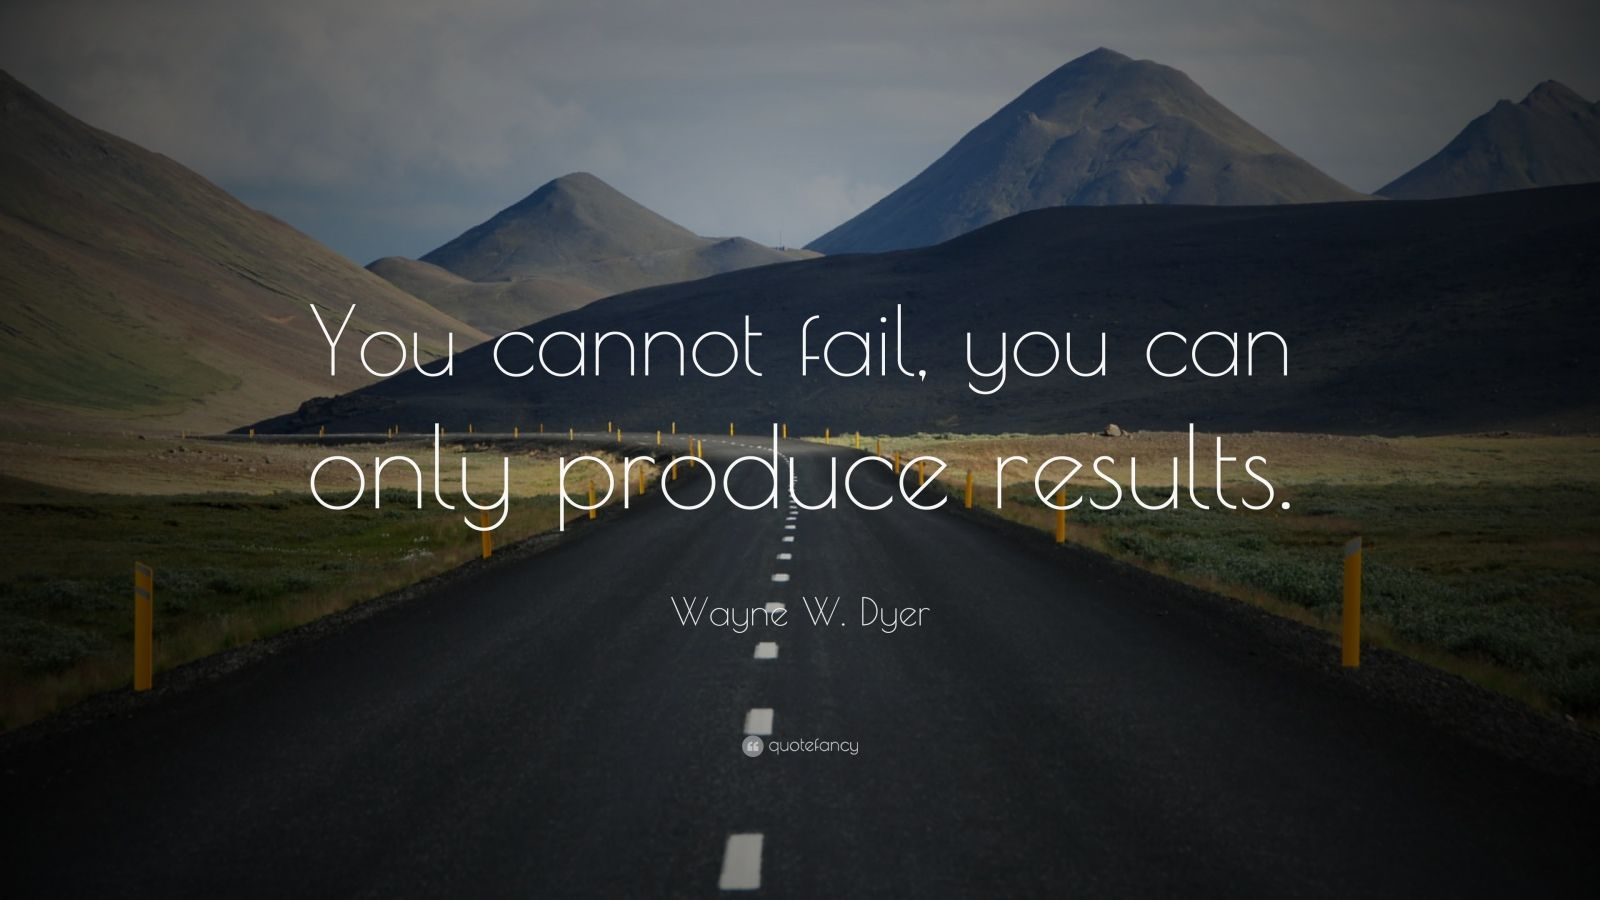 Wayne W. Dyer Quote: You cannot fail, you can only produce results ...